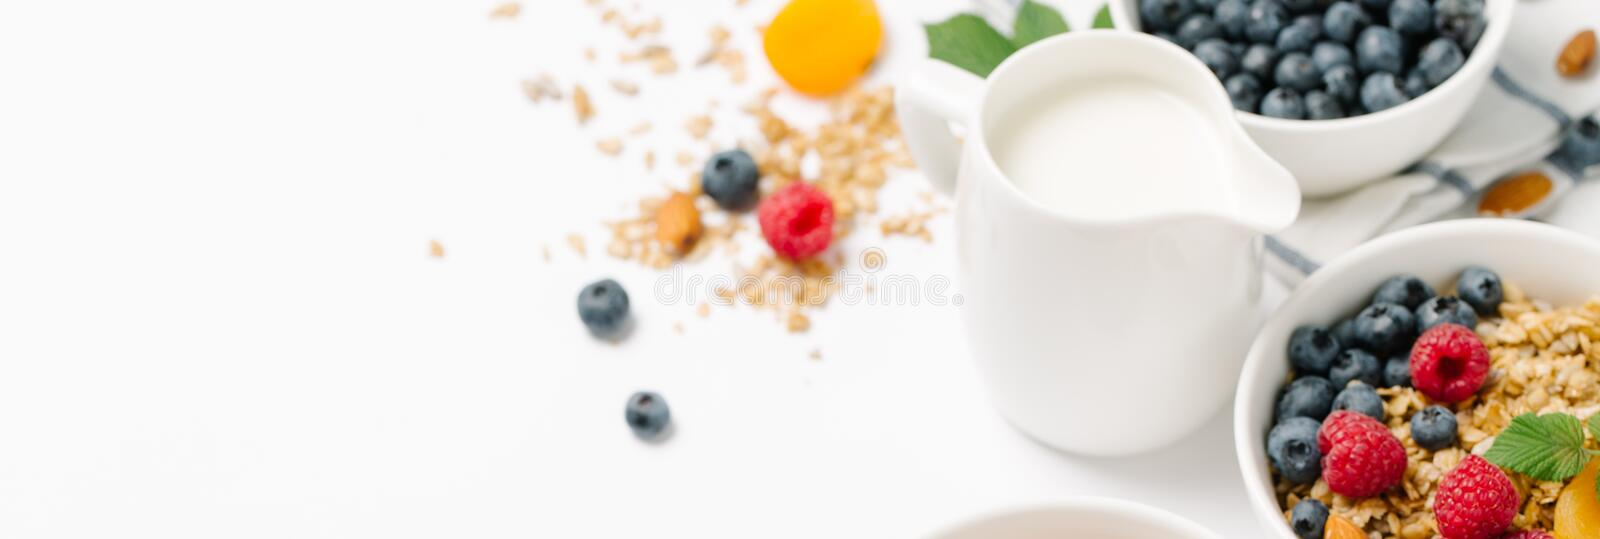 Homemade granola with dried fruit and berries on white background stock photo